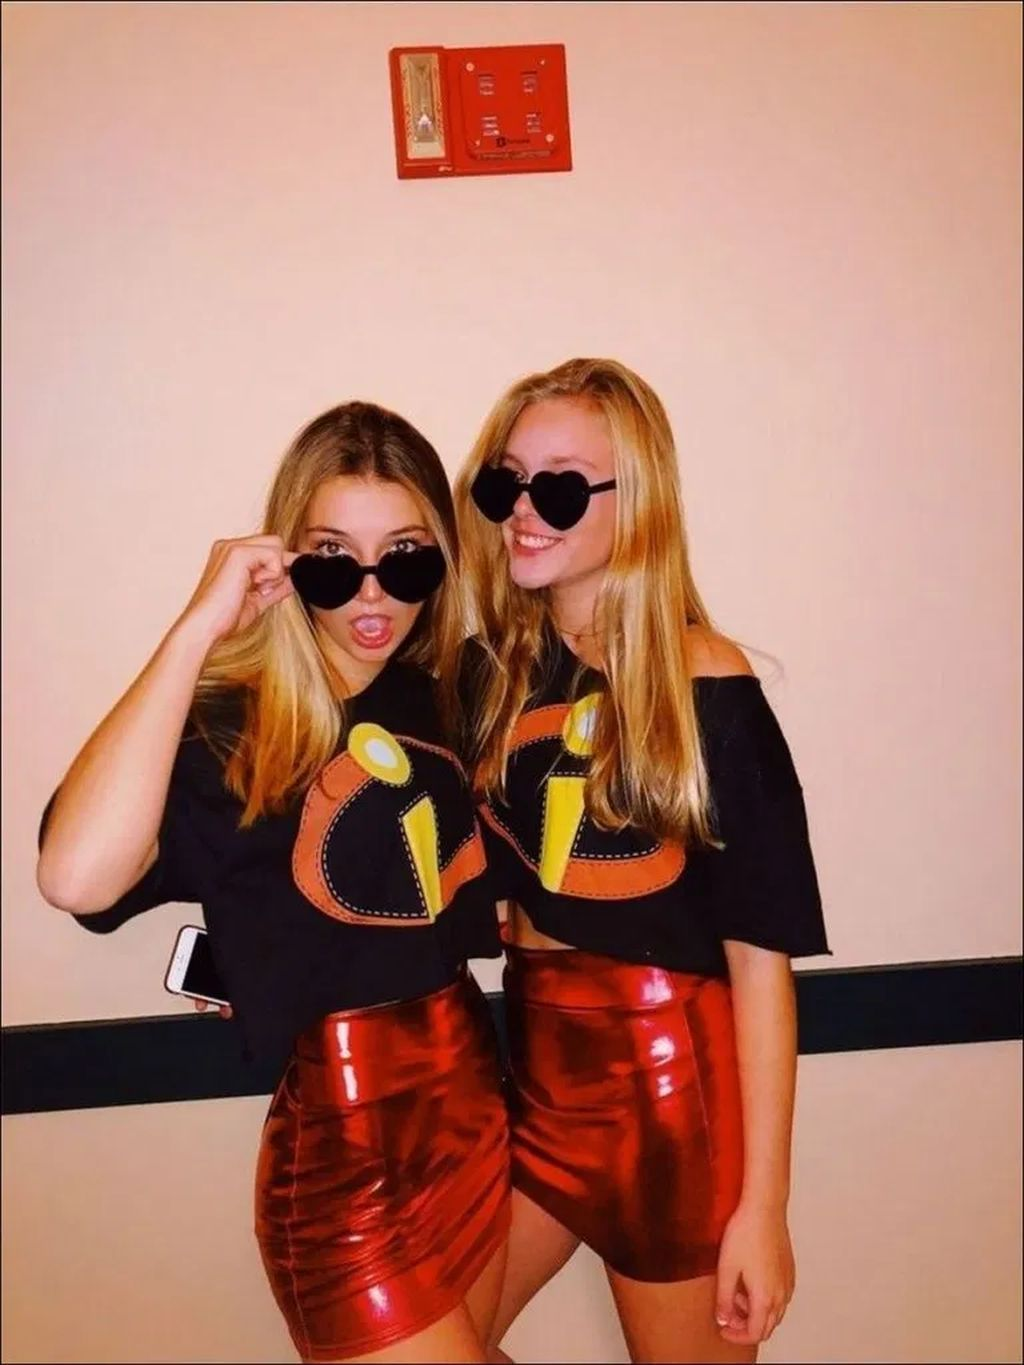 40 Unique Halloween Costume Ideas For Girls To Try 40 Unique Halloween Costume Ideas For Girls To Try halloween costumes